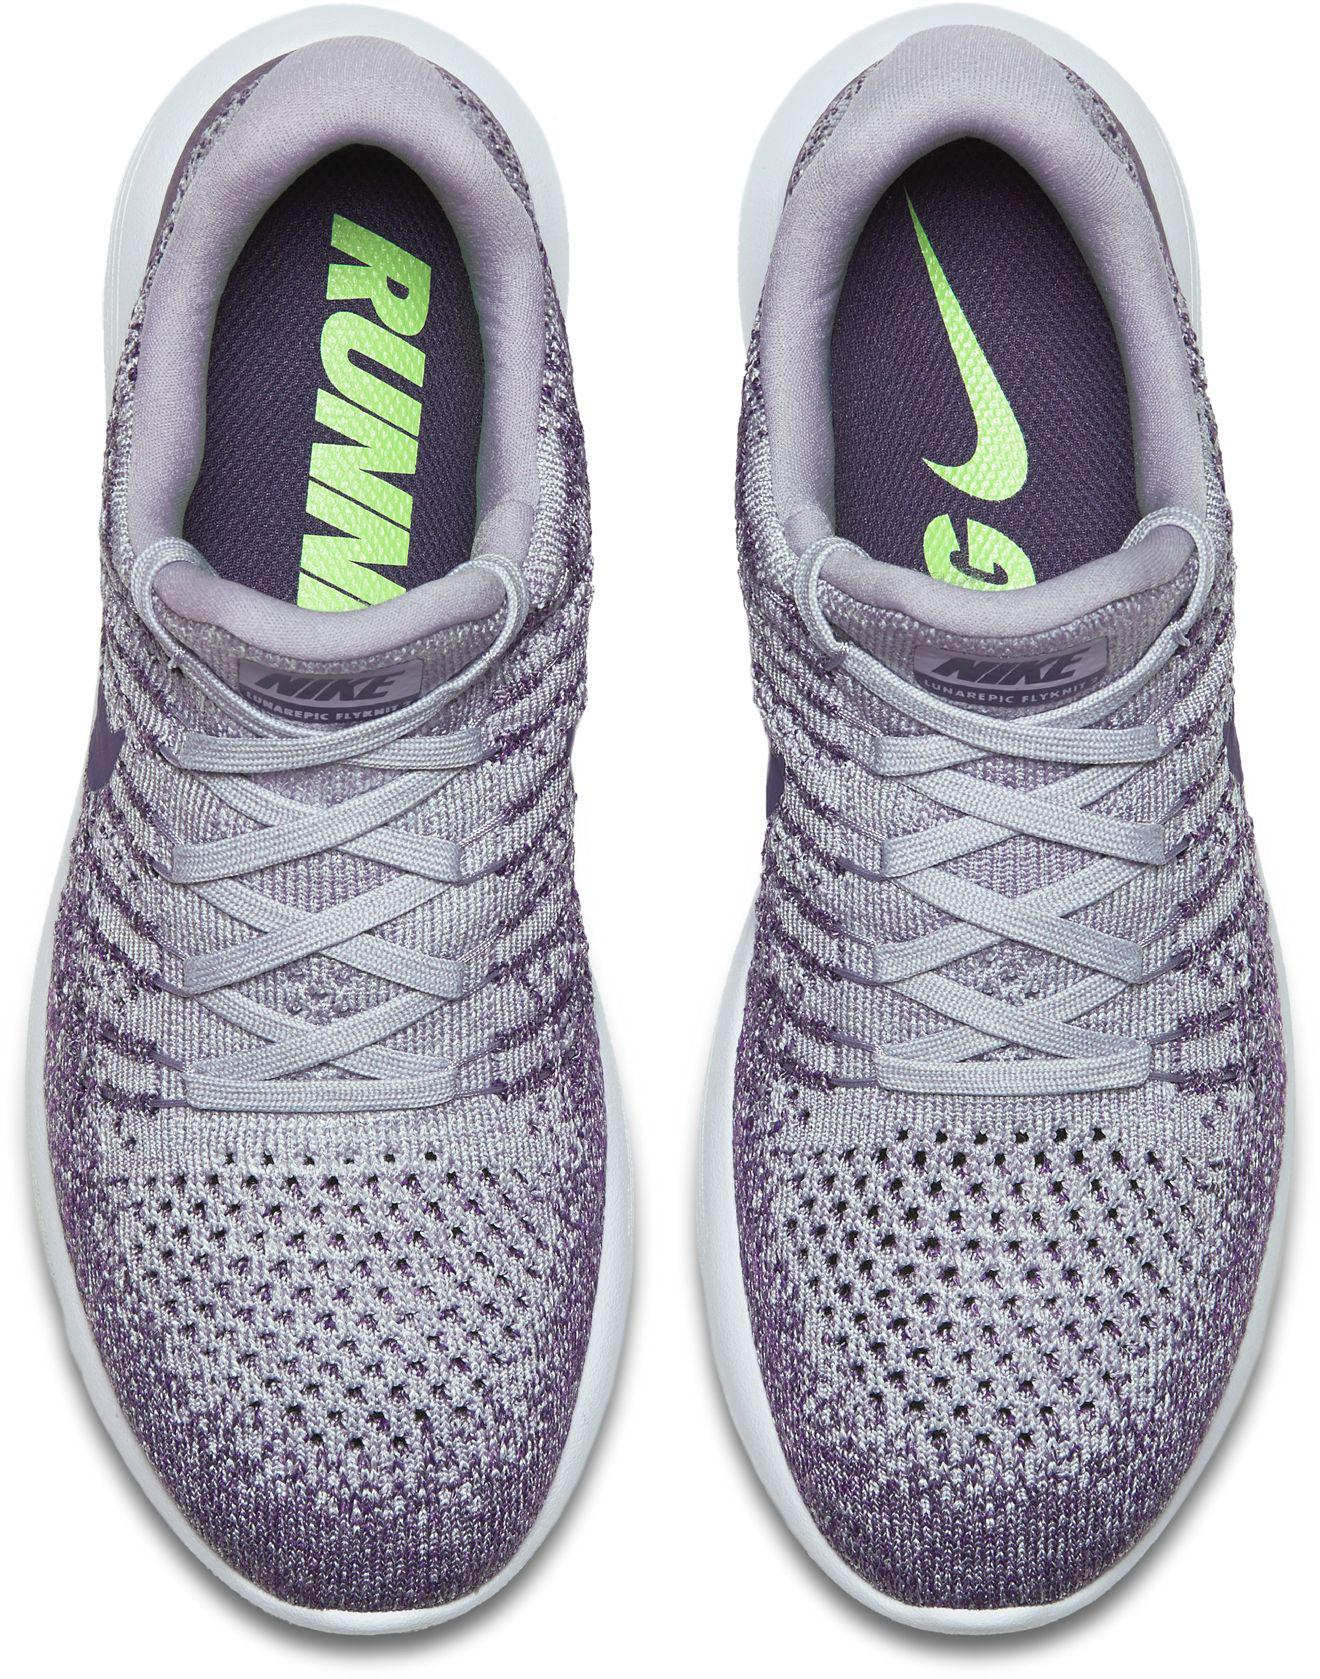 a6135a98dfa6 ... Nike - Purple Lunarepic Low Flyknit 2 Running Shoes for Men - Lyst  Nike  - Black ...